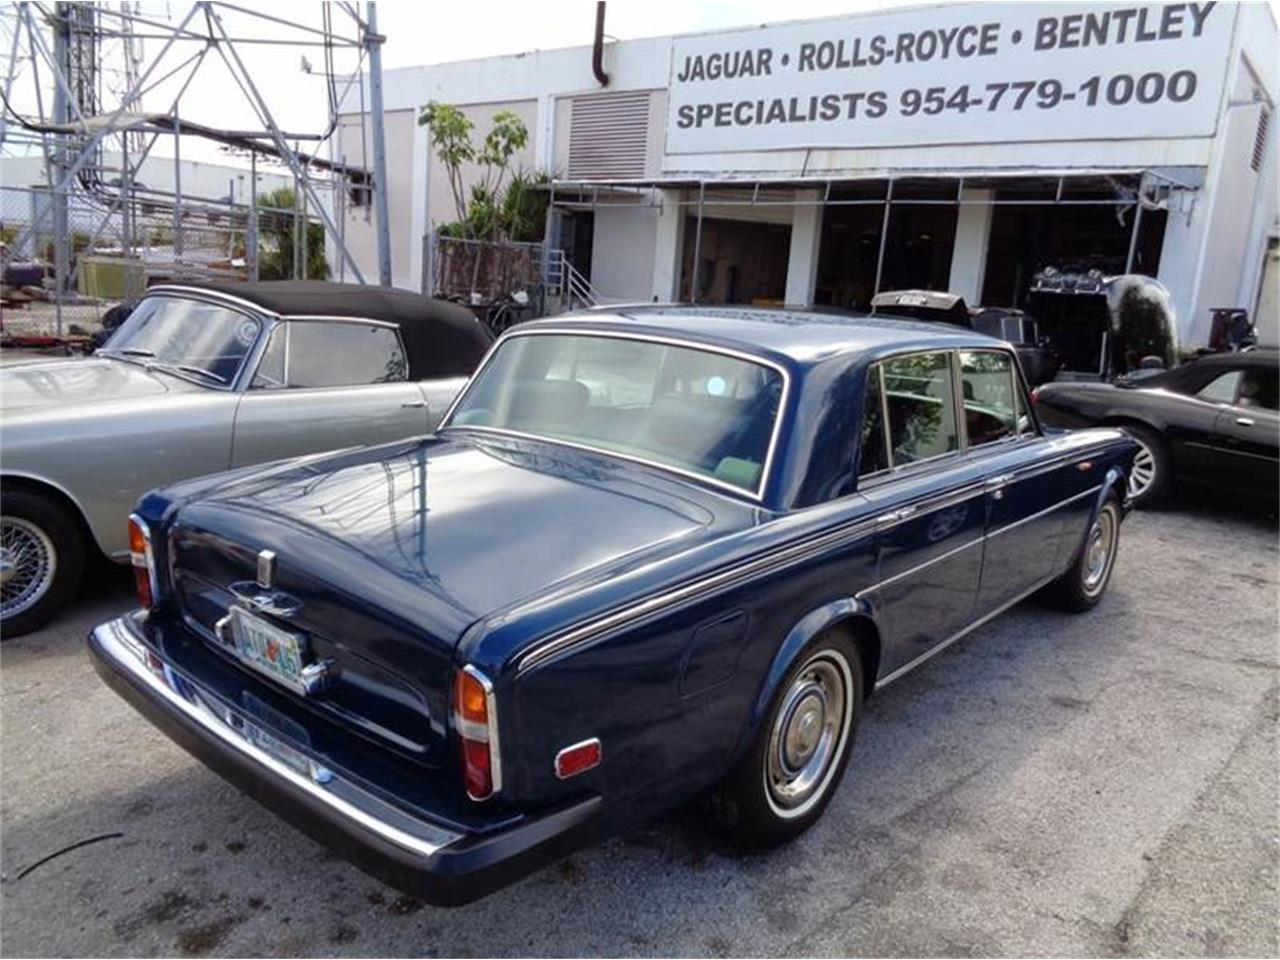 Large Picture of '75 Rolls-Royce Silver Shadow located in Fort Lauderdale Florida - $34,950.00 - FCET